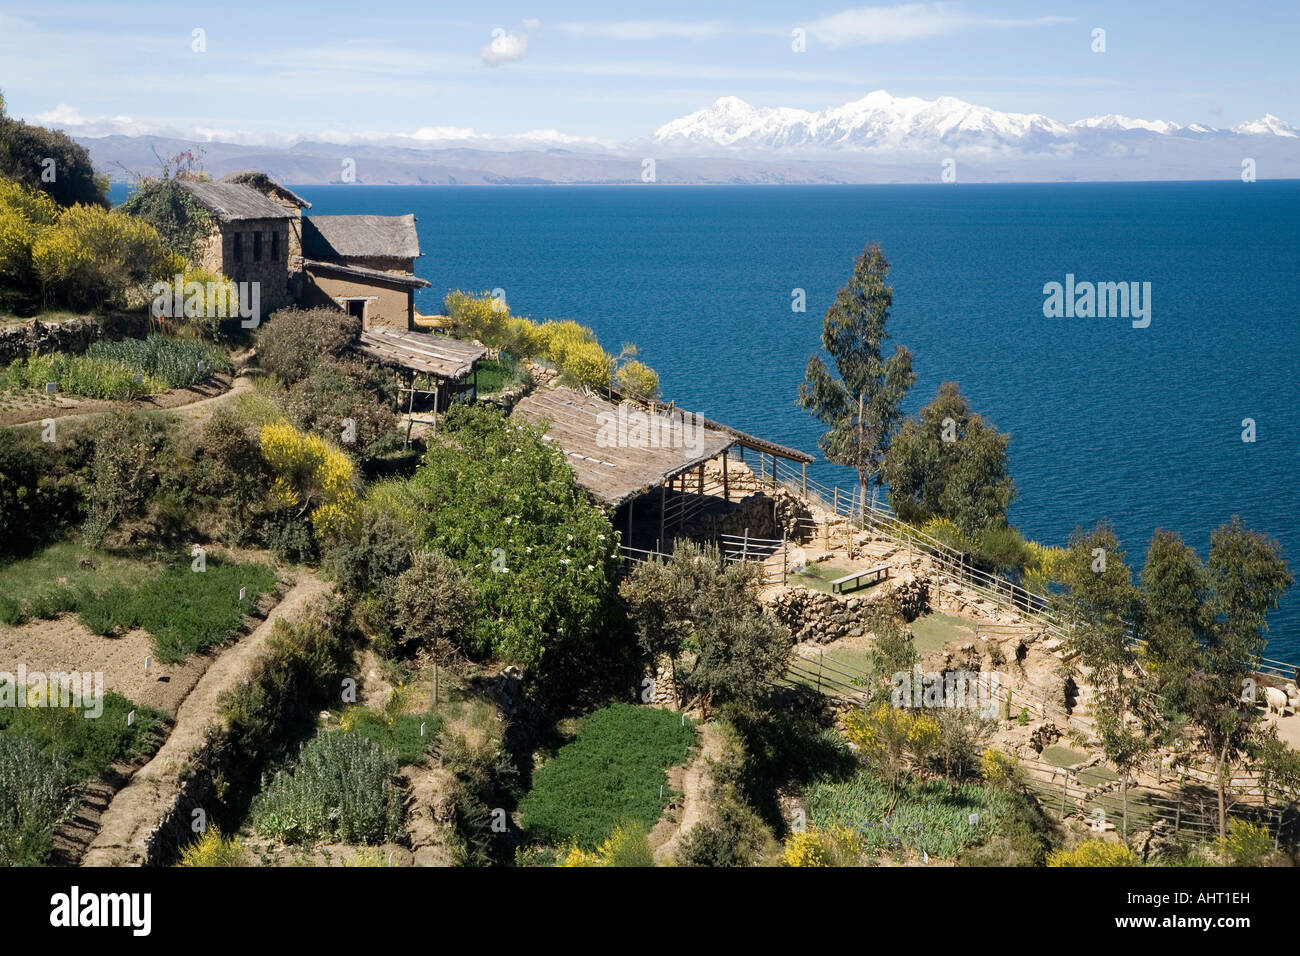 View over the lake to Cordillera Real and Mount Illampu - Stock Image